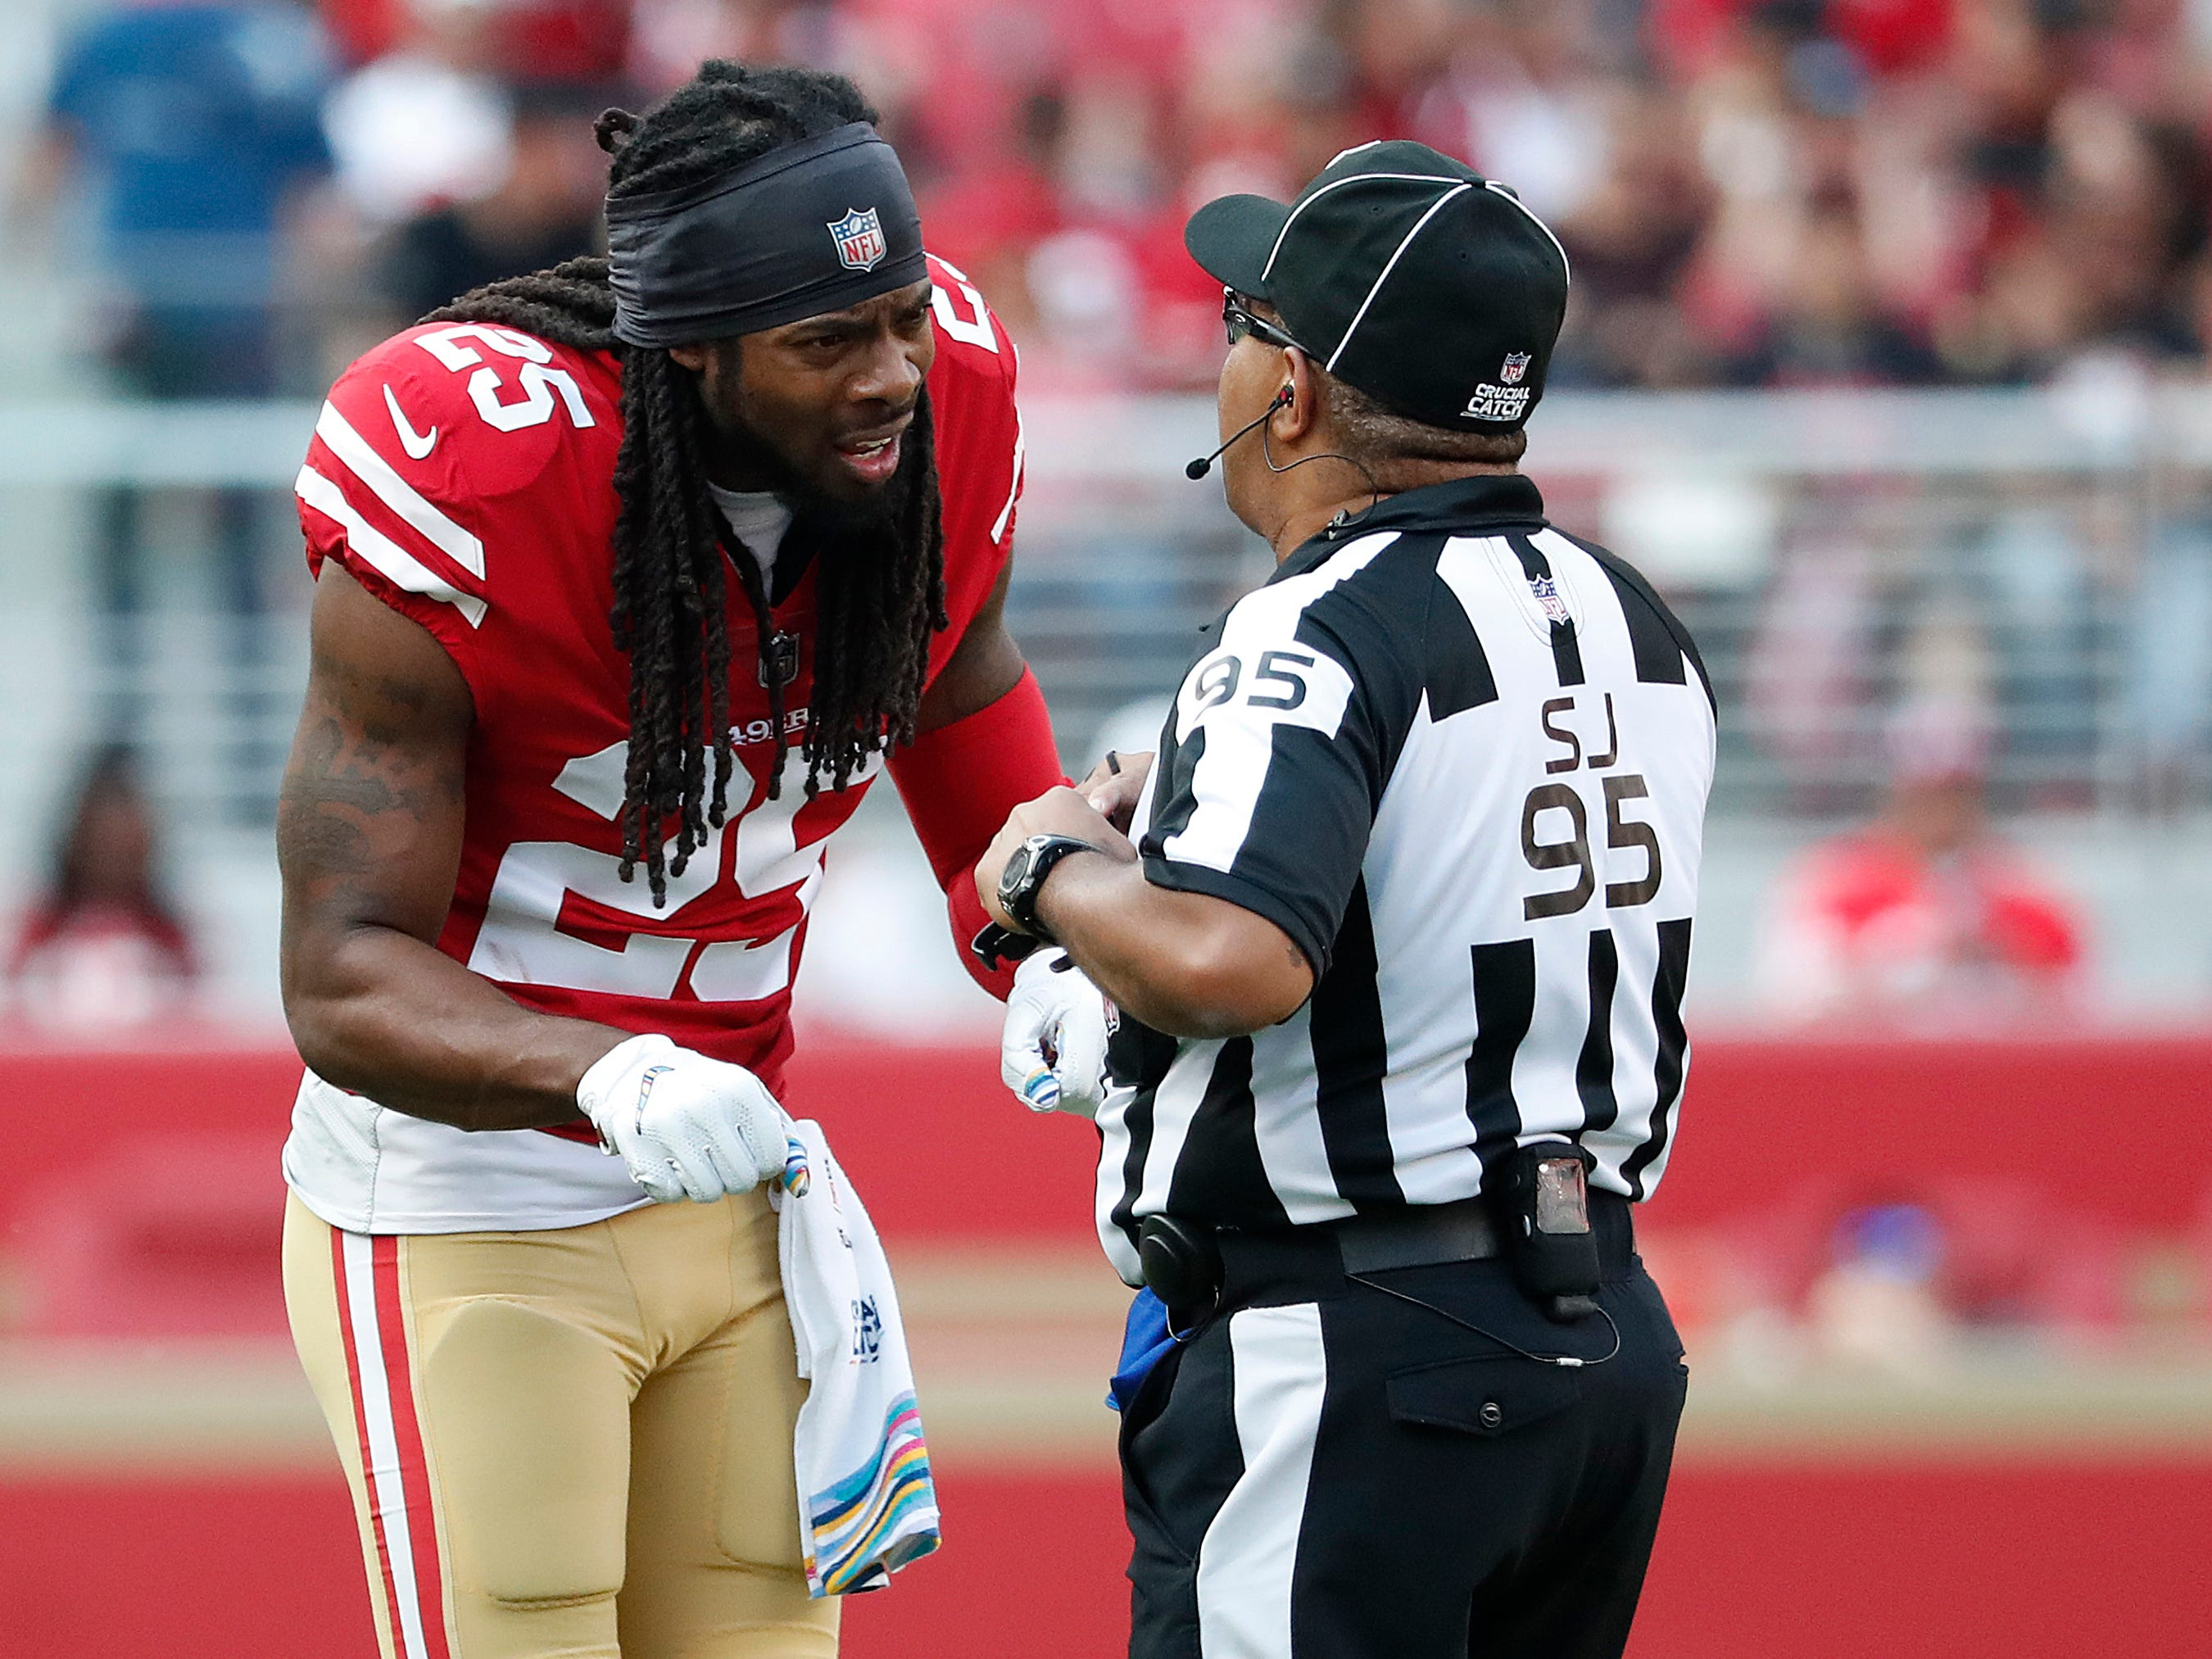 San Francisco 49ers defensive back Richard Sherman (25) talks with field judge James Coleman during the second half of an NFL football game between the 49ers and the Arizona Cardinals in Santa Clara, Calif., Sunday, Oct. 7, 2018.